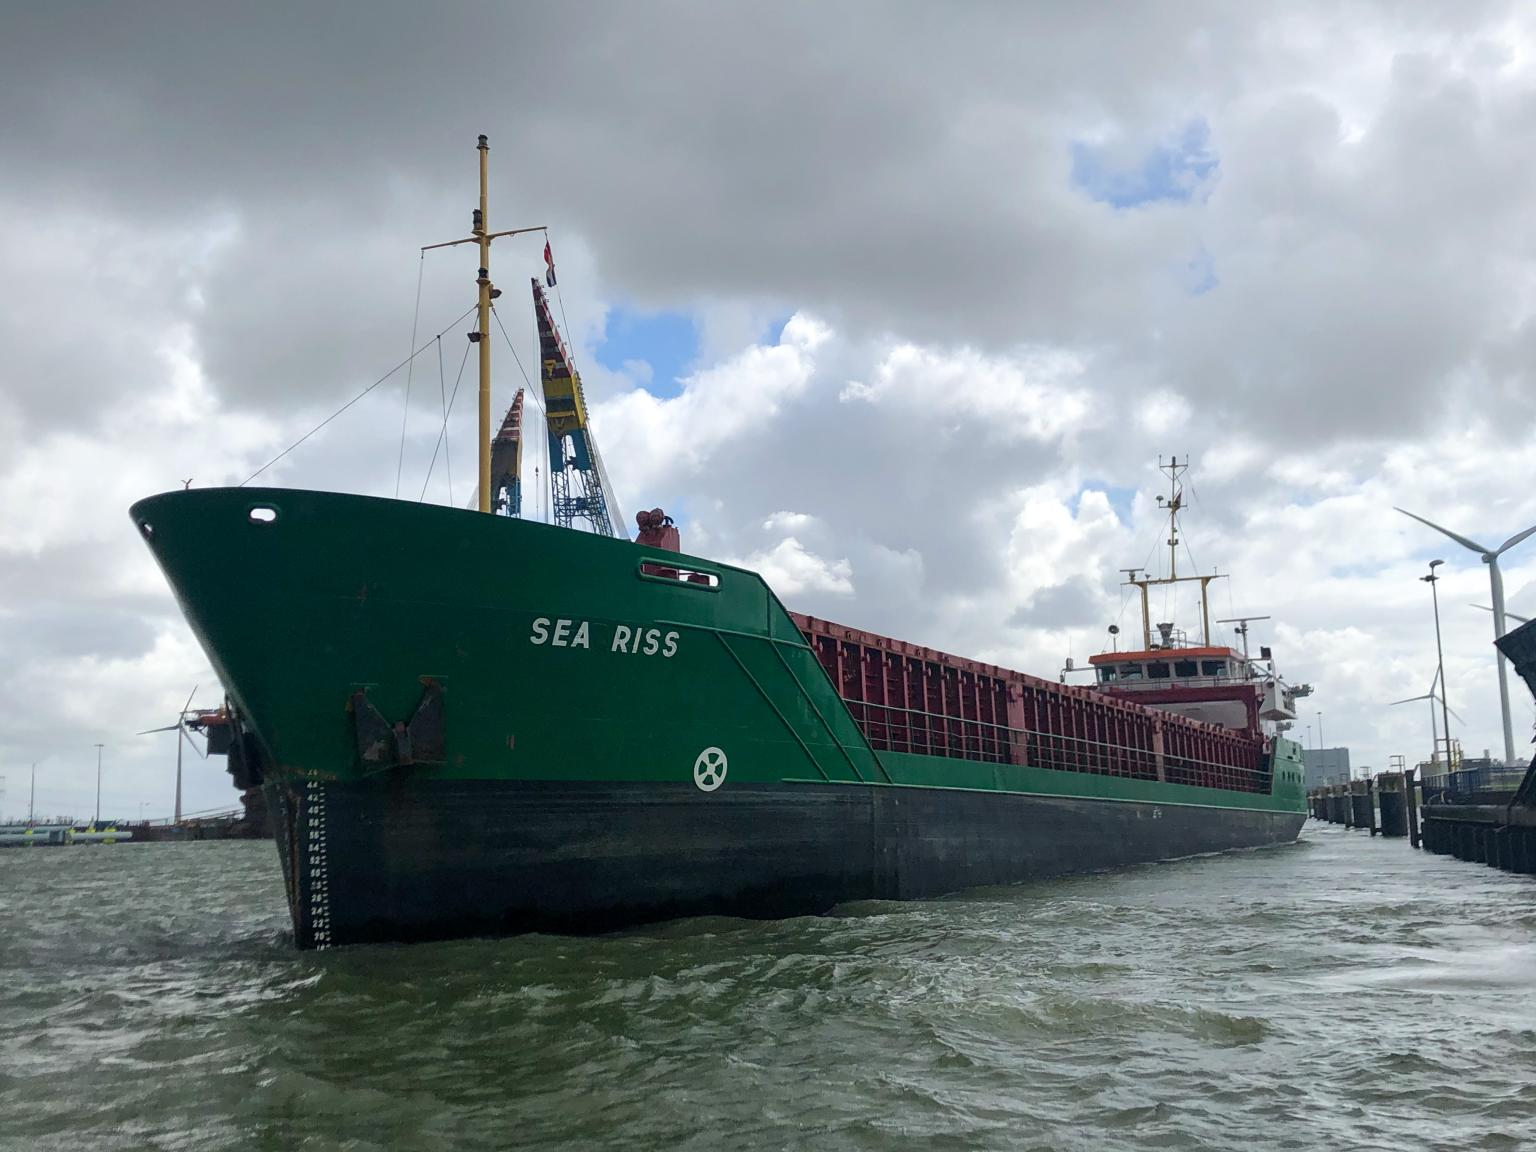 mv Sea Riss finished her job